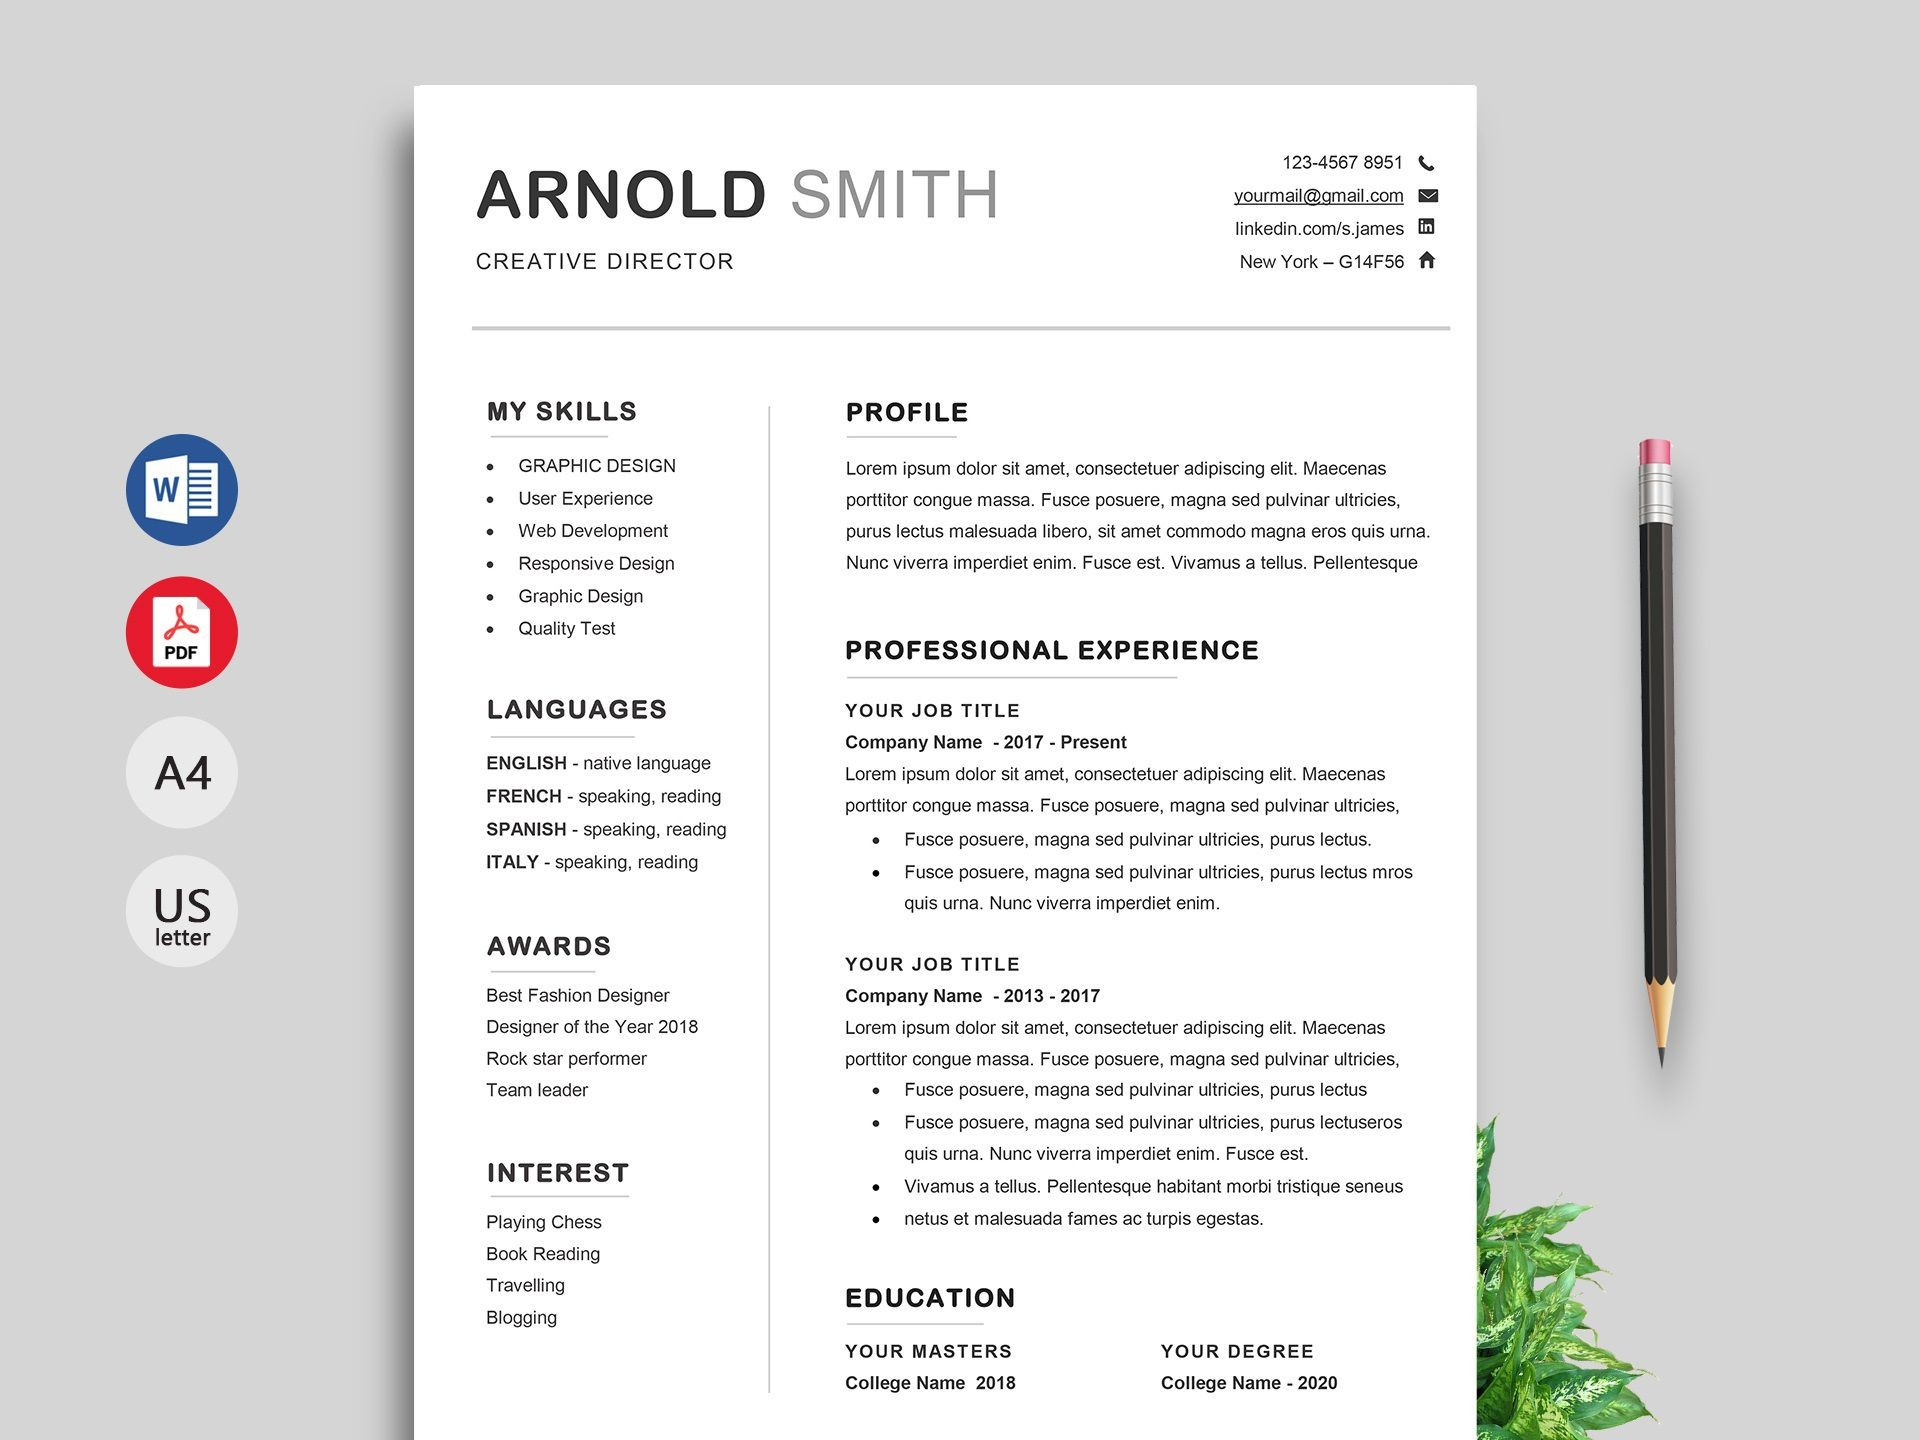 002 Formidable Resume Template Free Word Sample  Download Document 2020 For Fresher1920